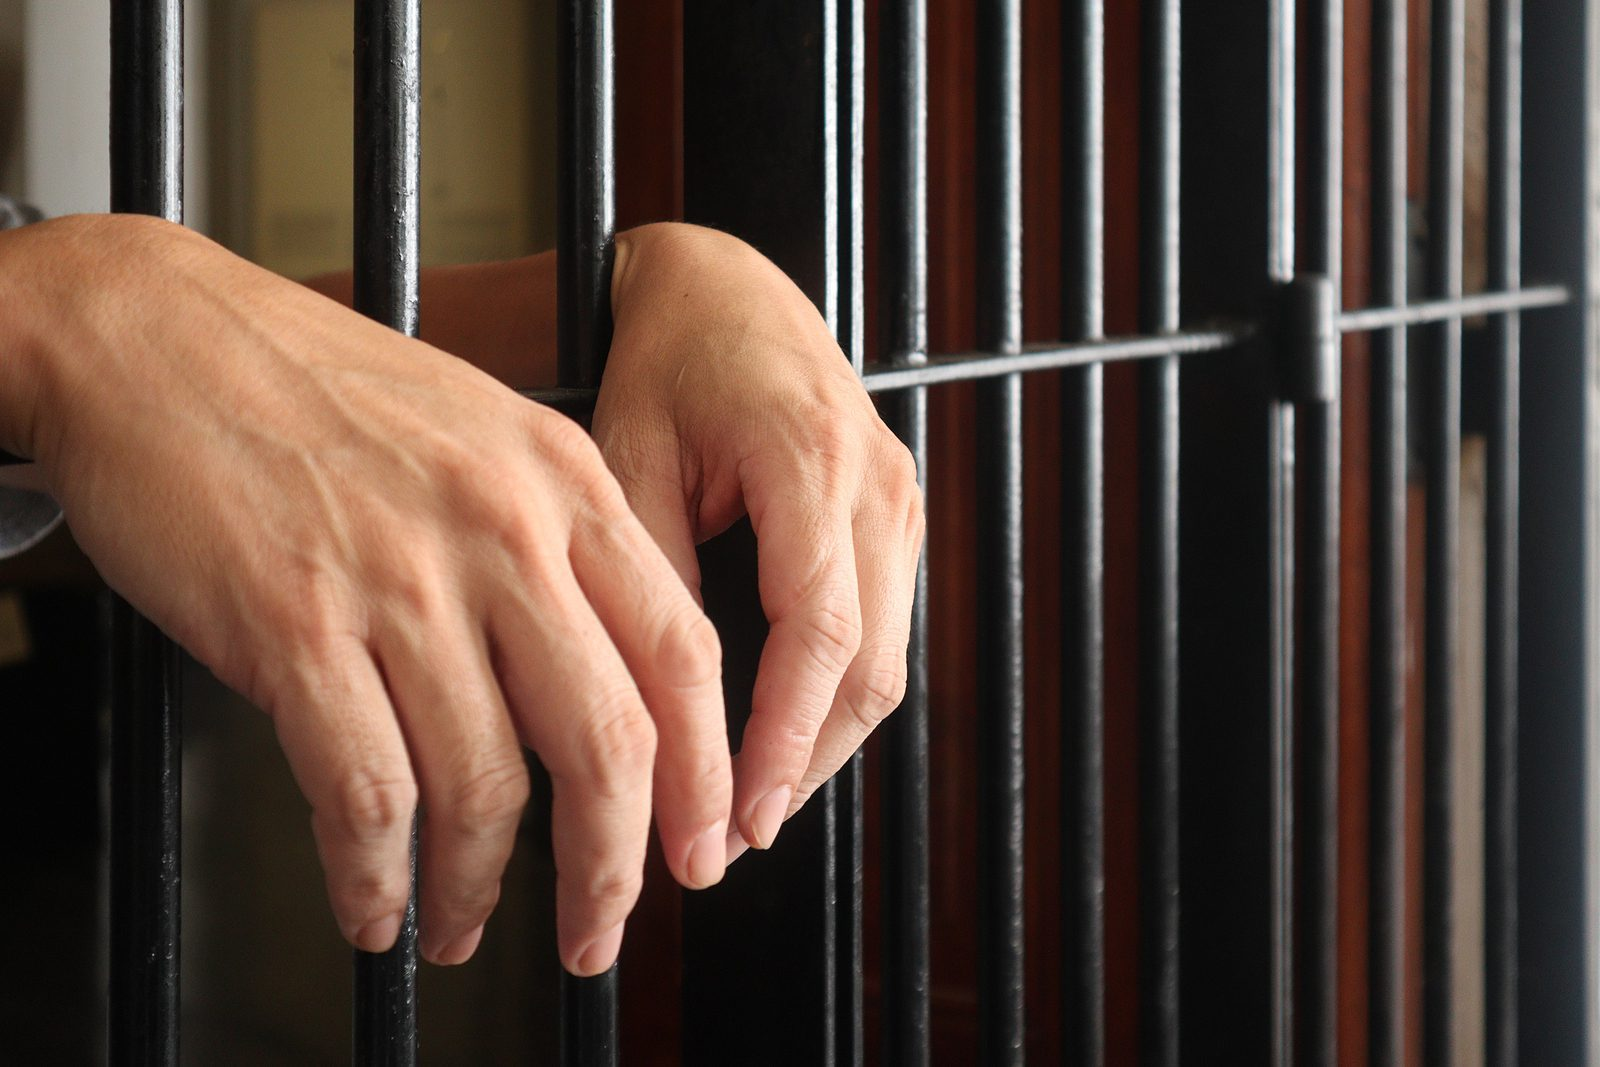 Jail for Not Paying Loan